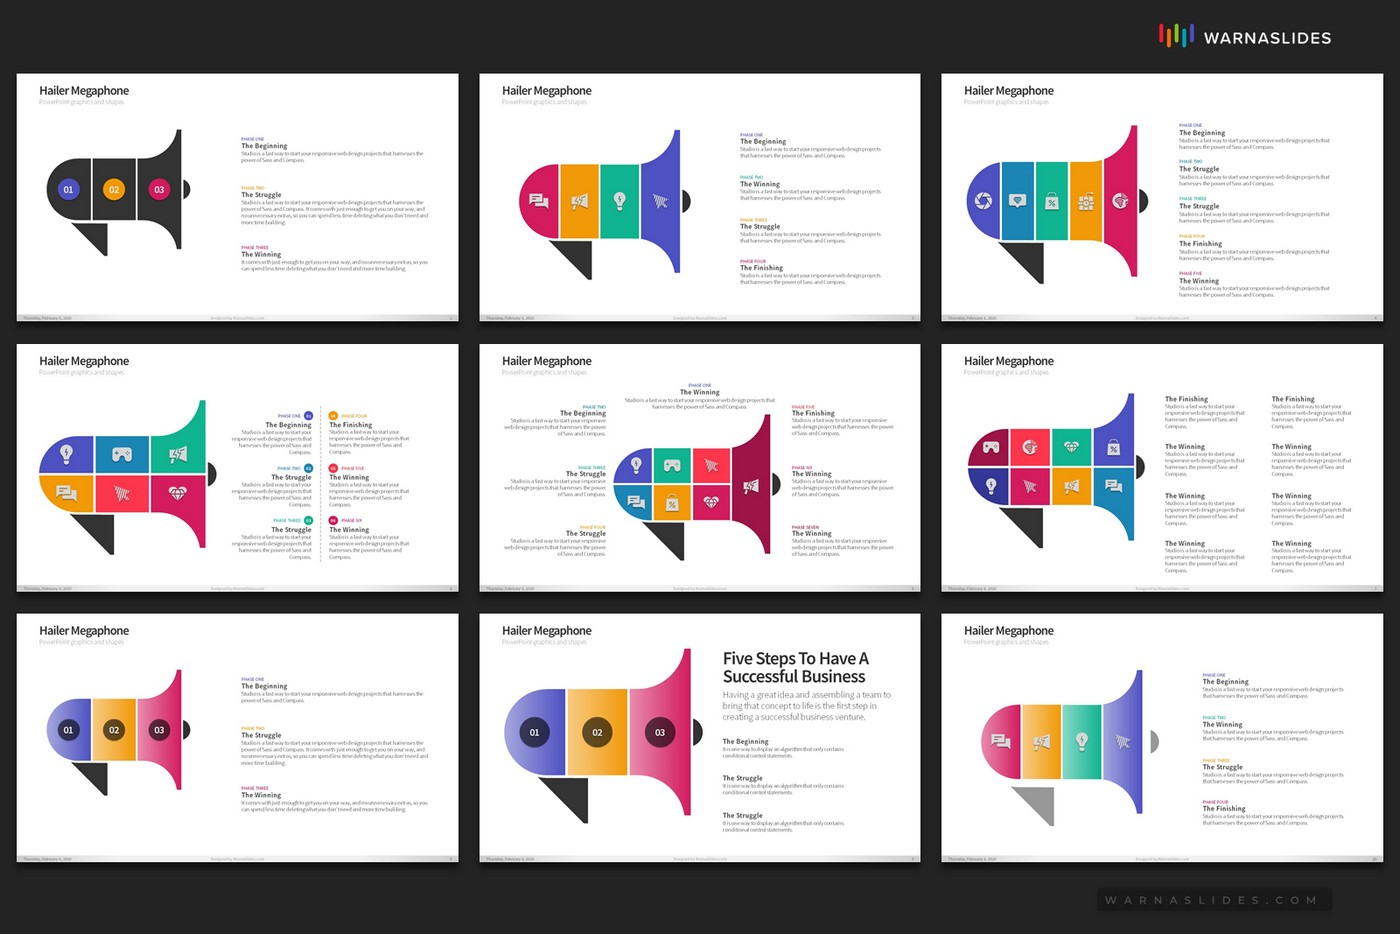 Megaphone-Hailer-Digital-Marketing-PowerPoint-Template-for-Business-Pitch-Deck-Professional-Creative-PowerPoint-Icons-007